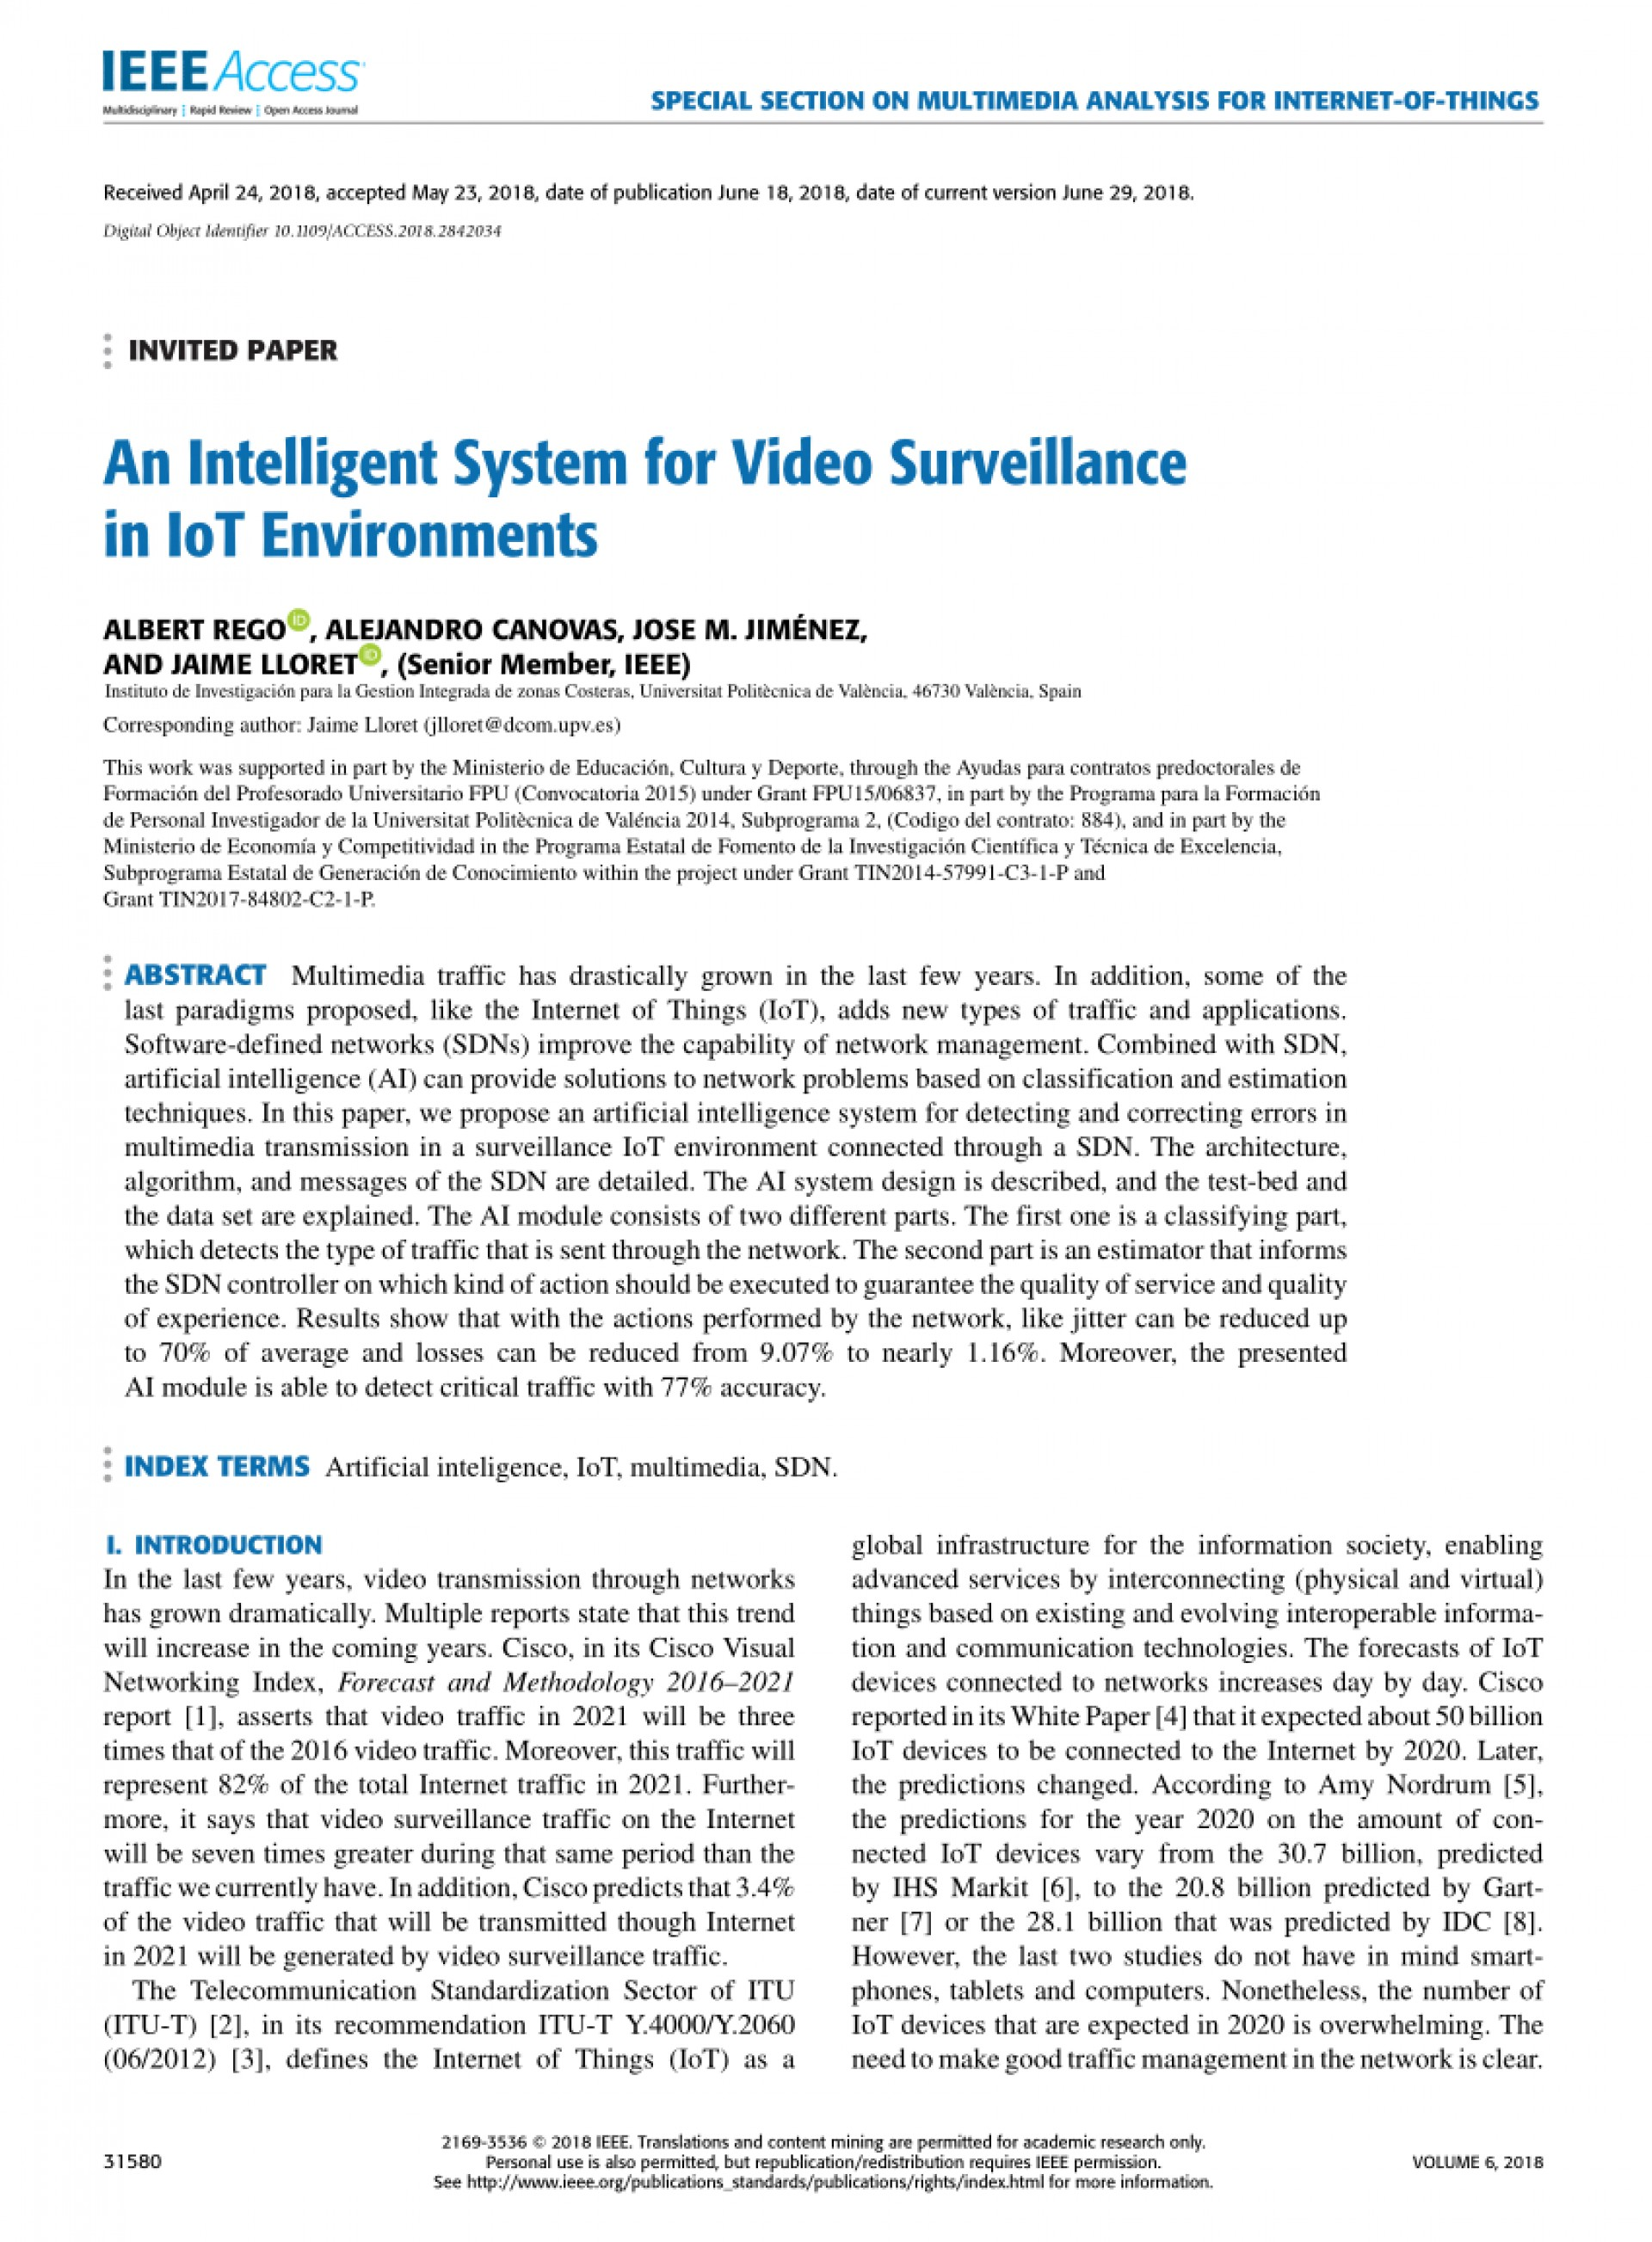 001 Research Paper Artificial Intelligence Ieee Impressive 2018 1920